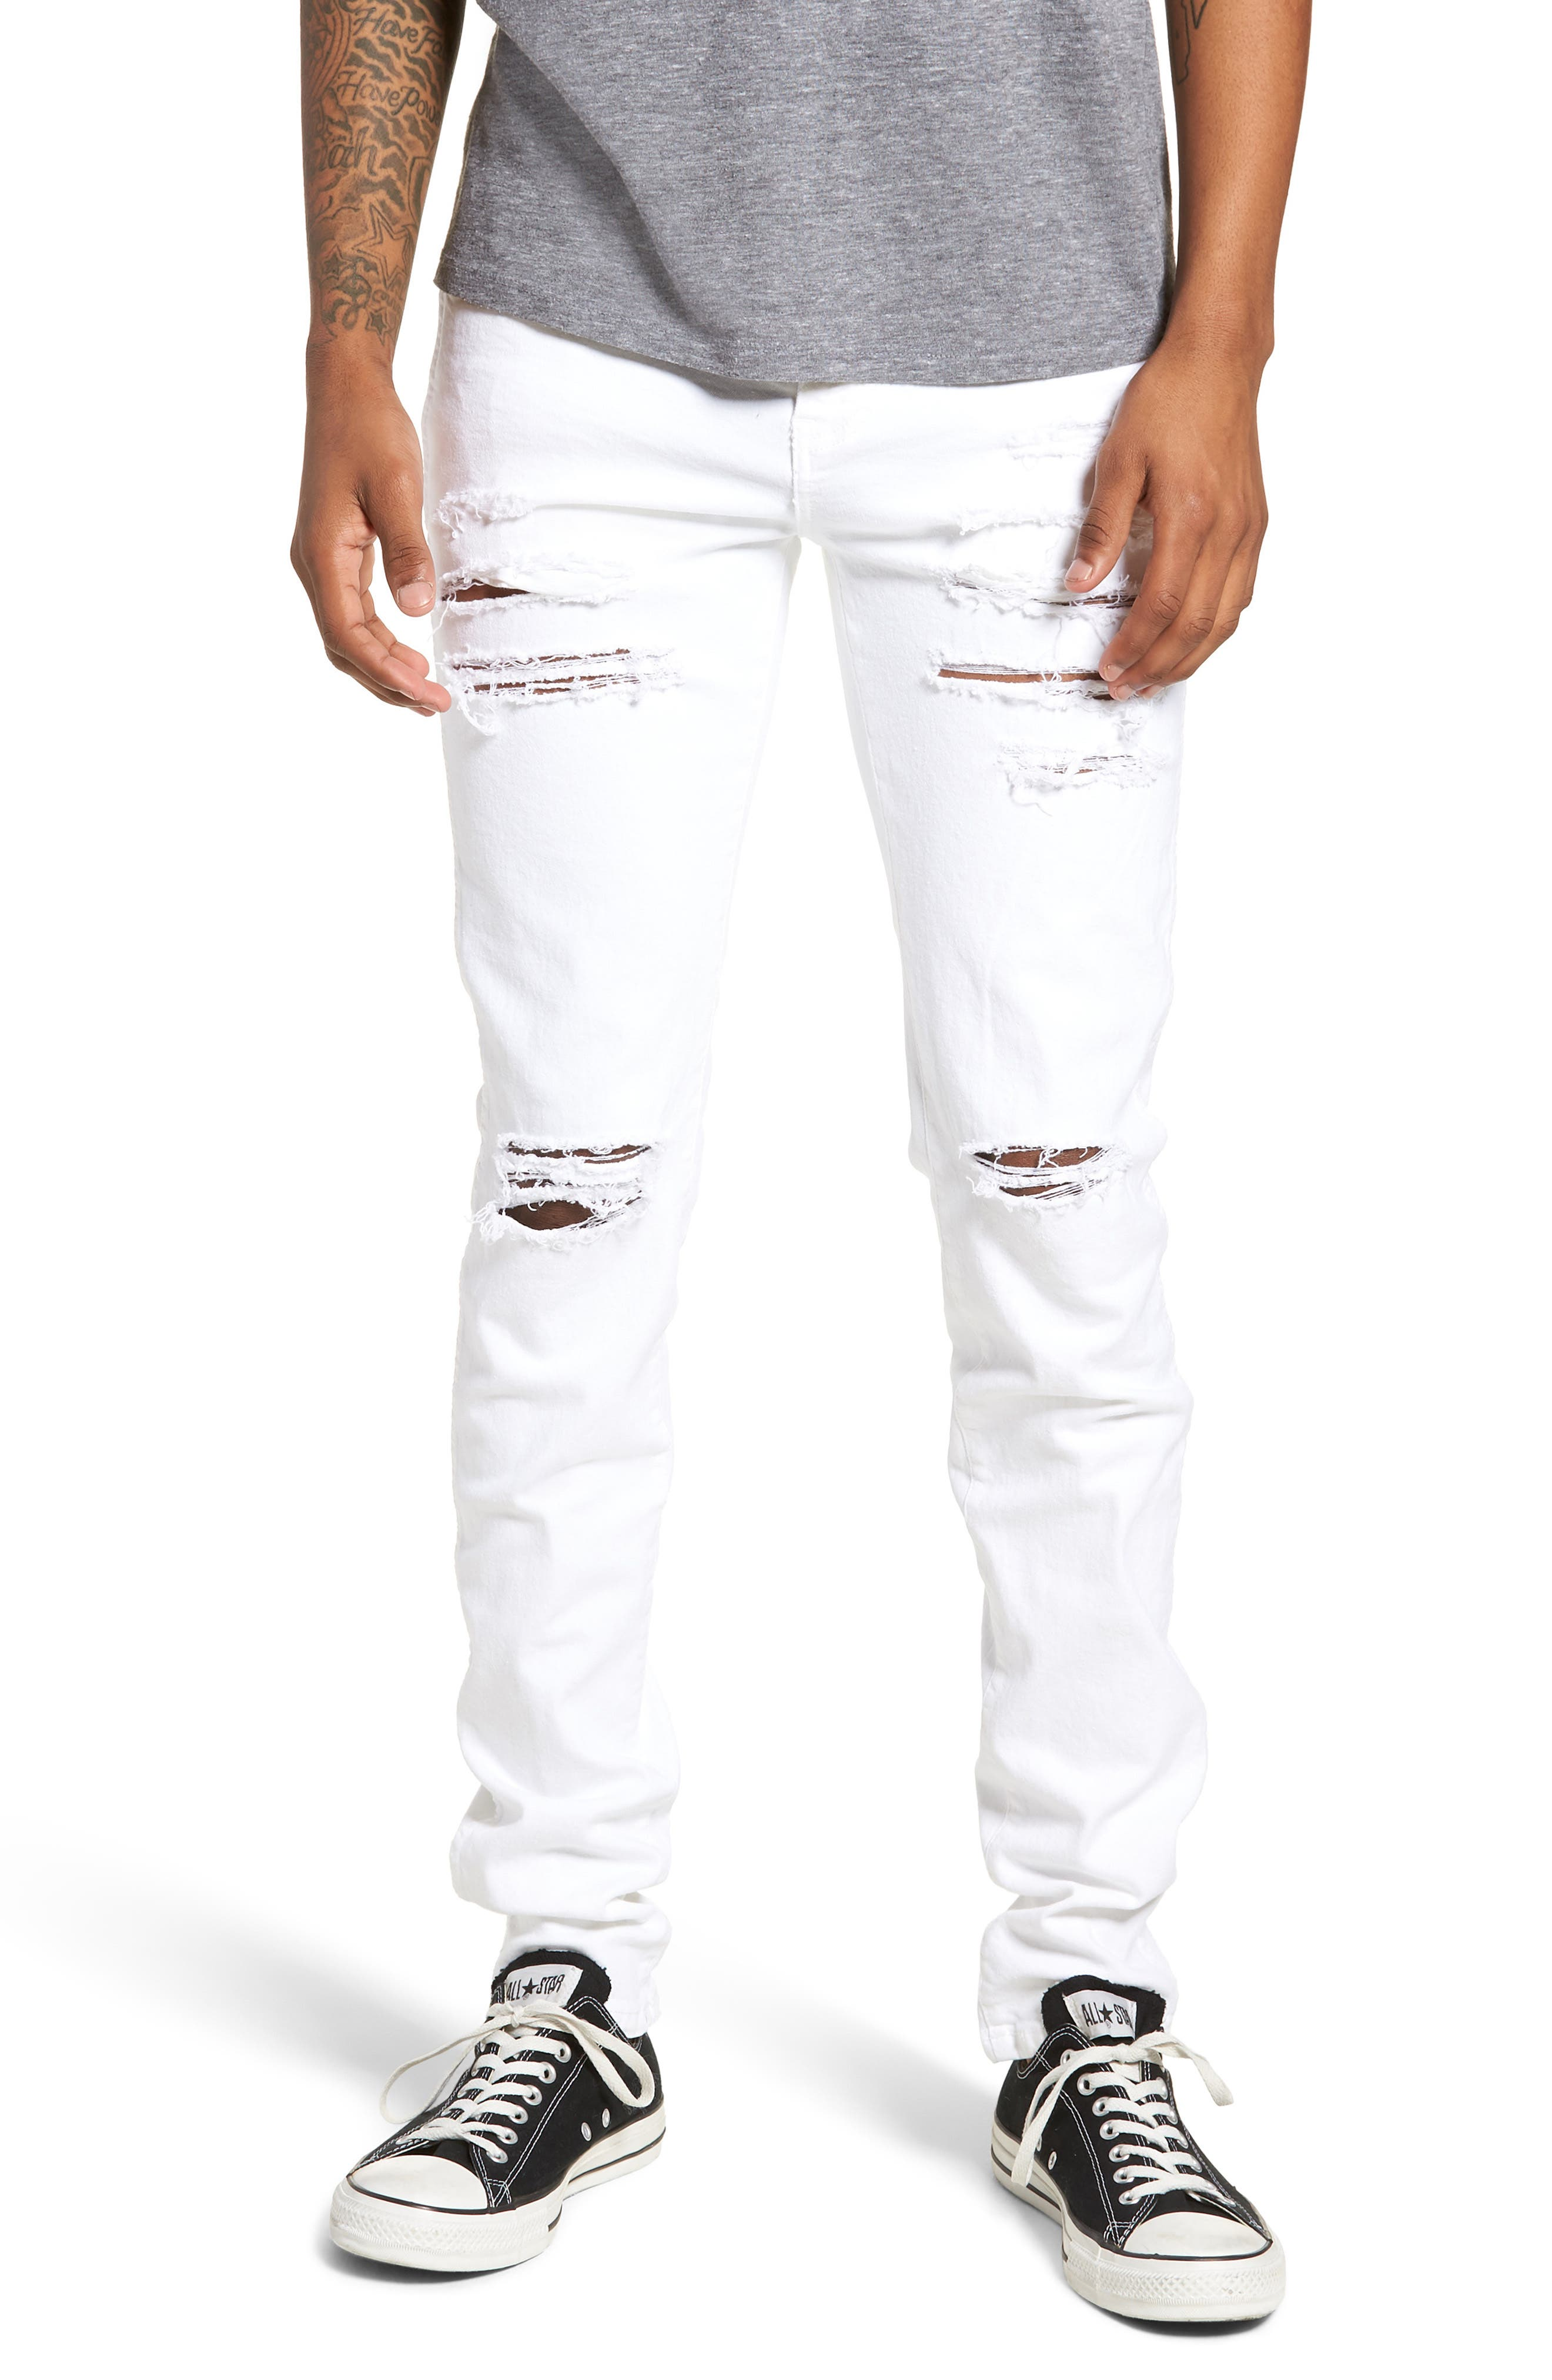 Snap Skinny Fit Jeans,                         Main,                         color, White Ripped